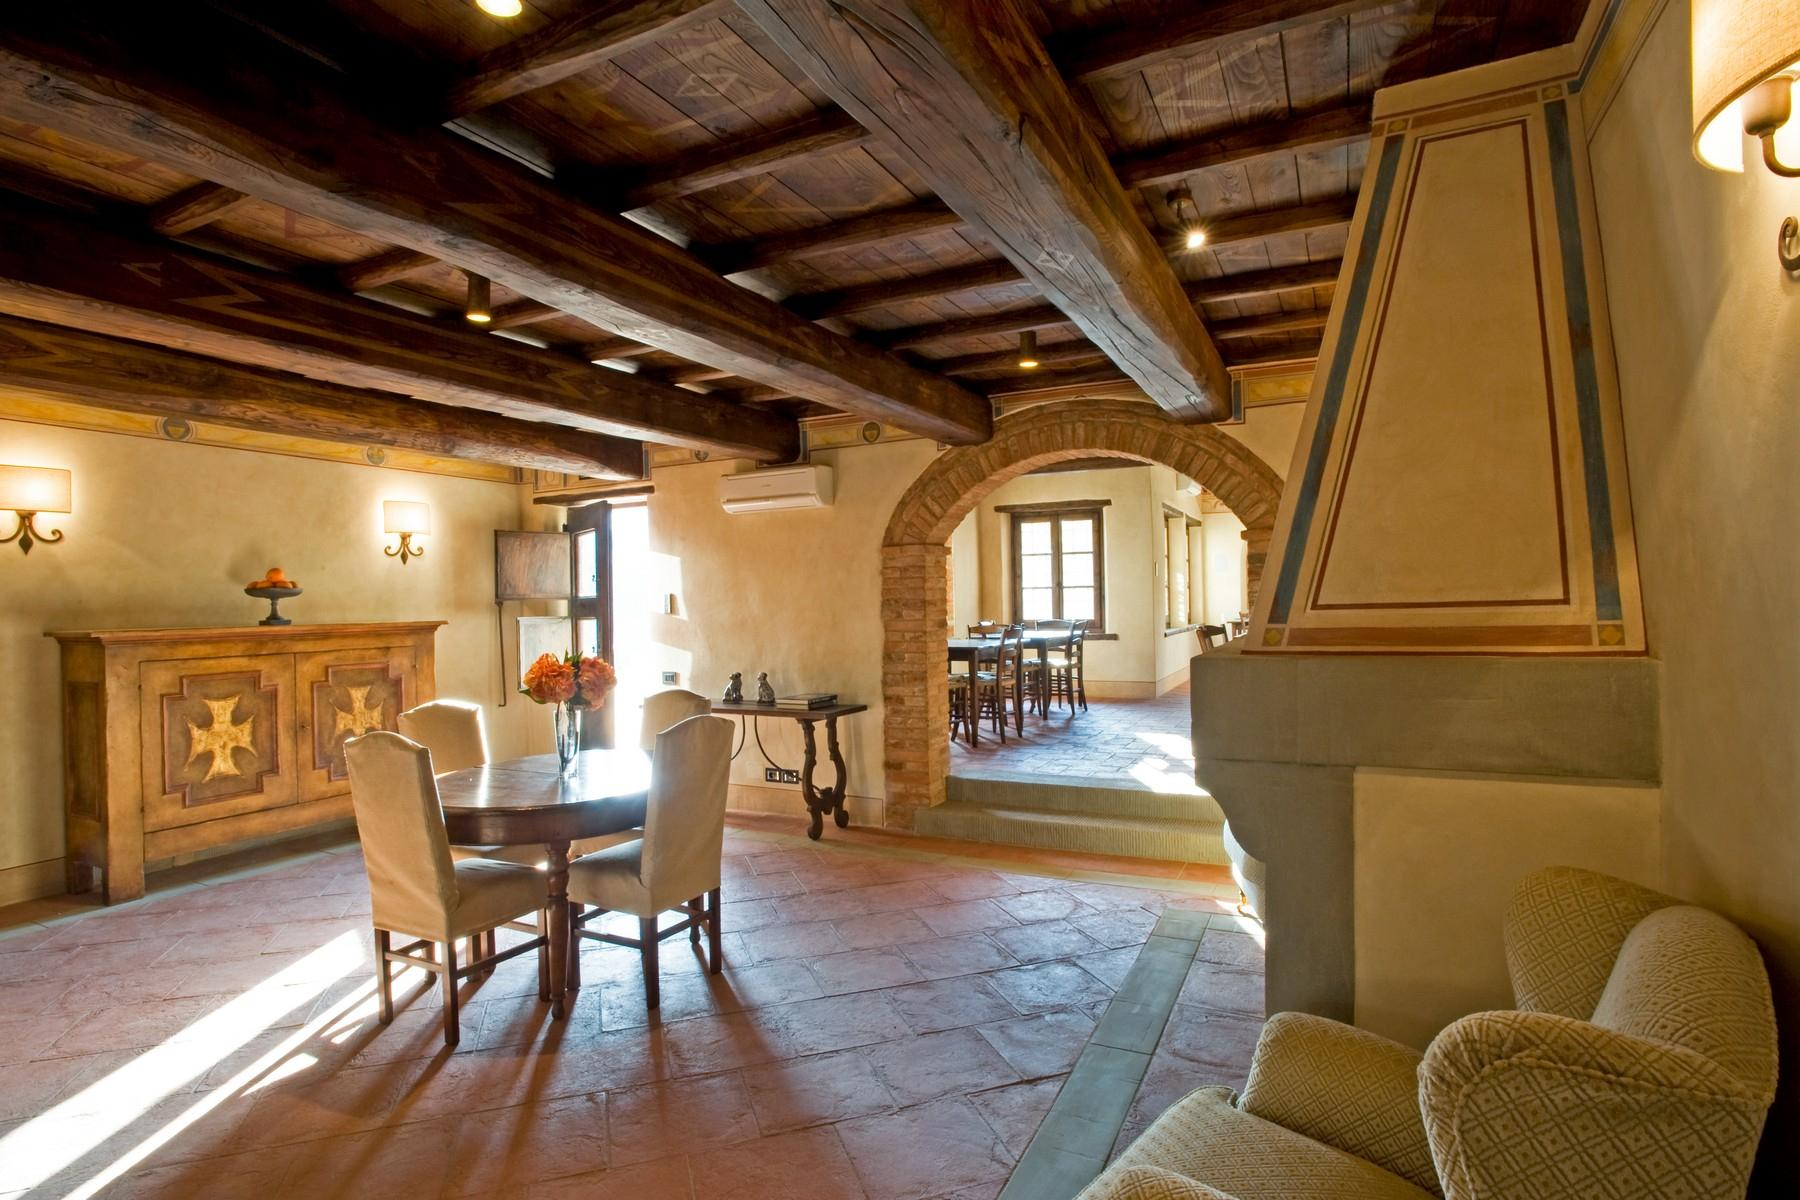 Farmhouse for sale in the Tuscan hills - 7